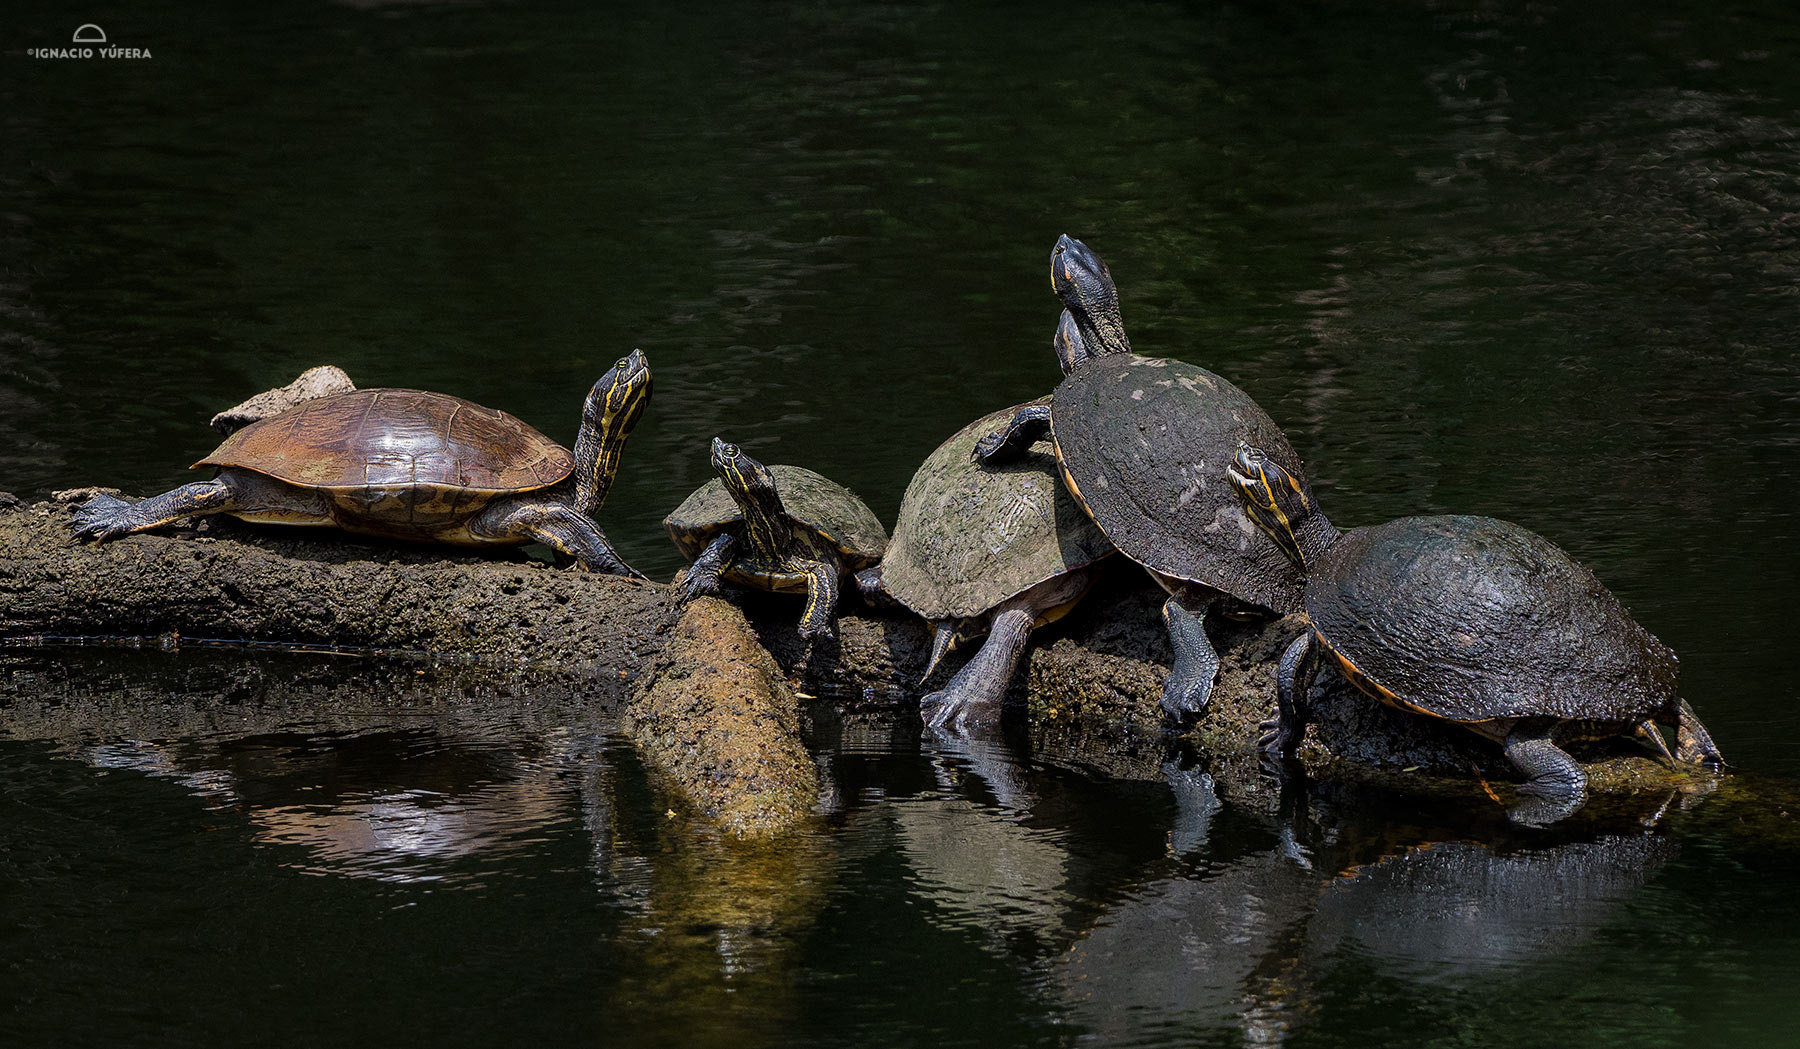 Central American sliders (Trachemys venusta)